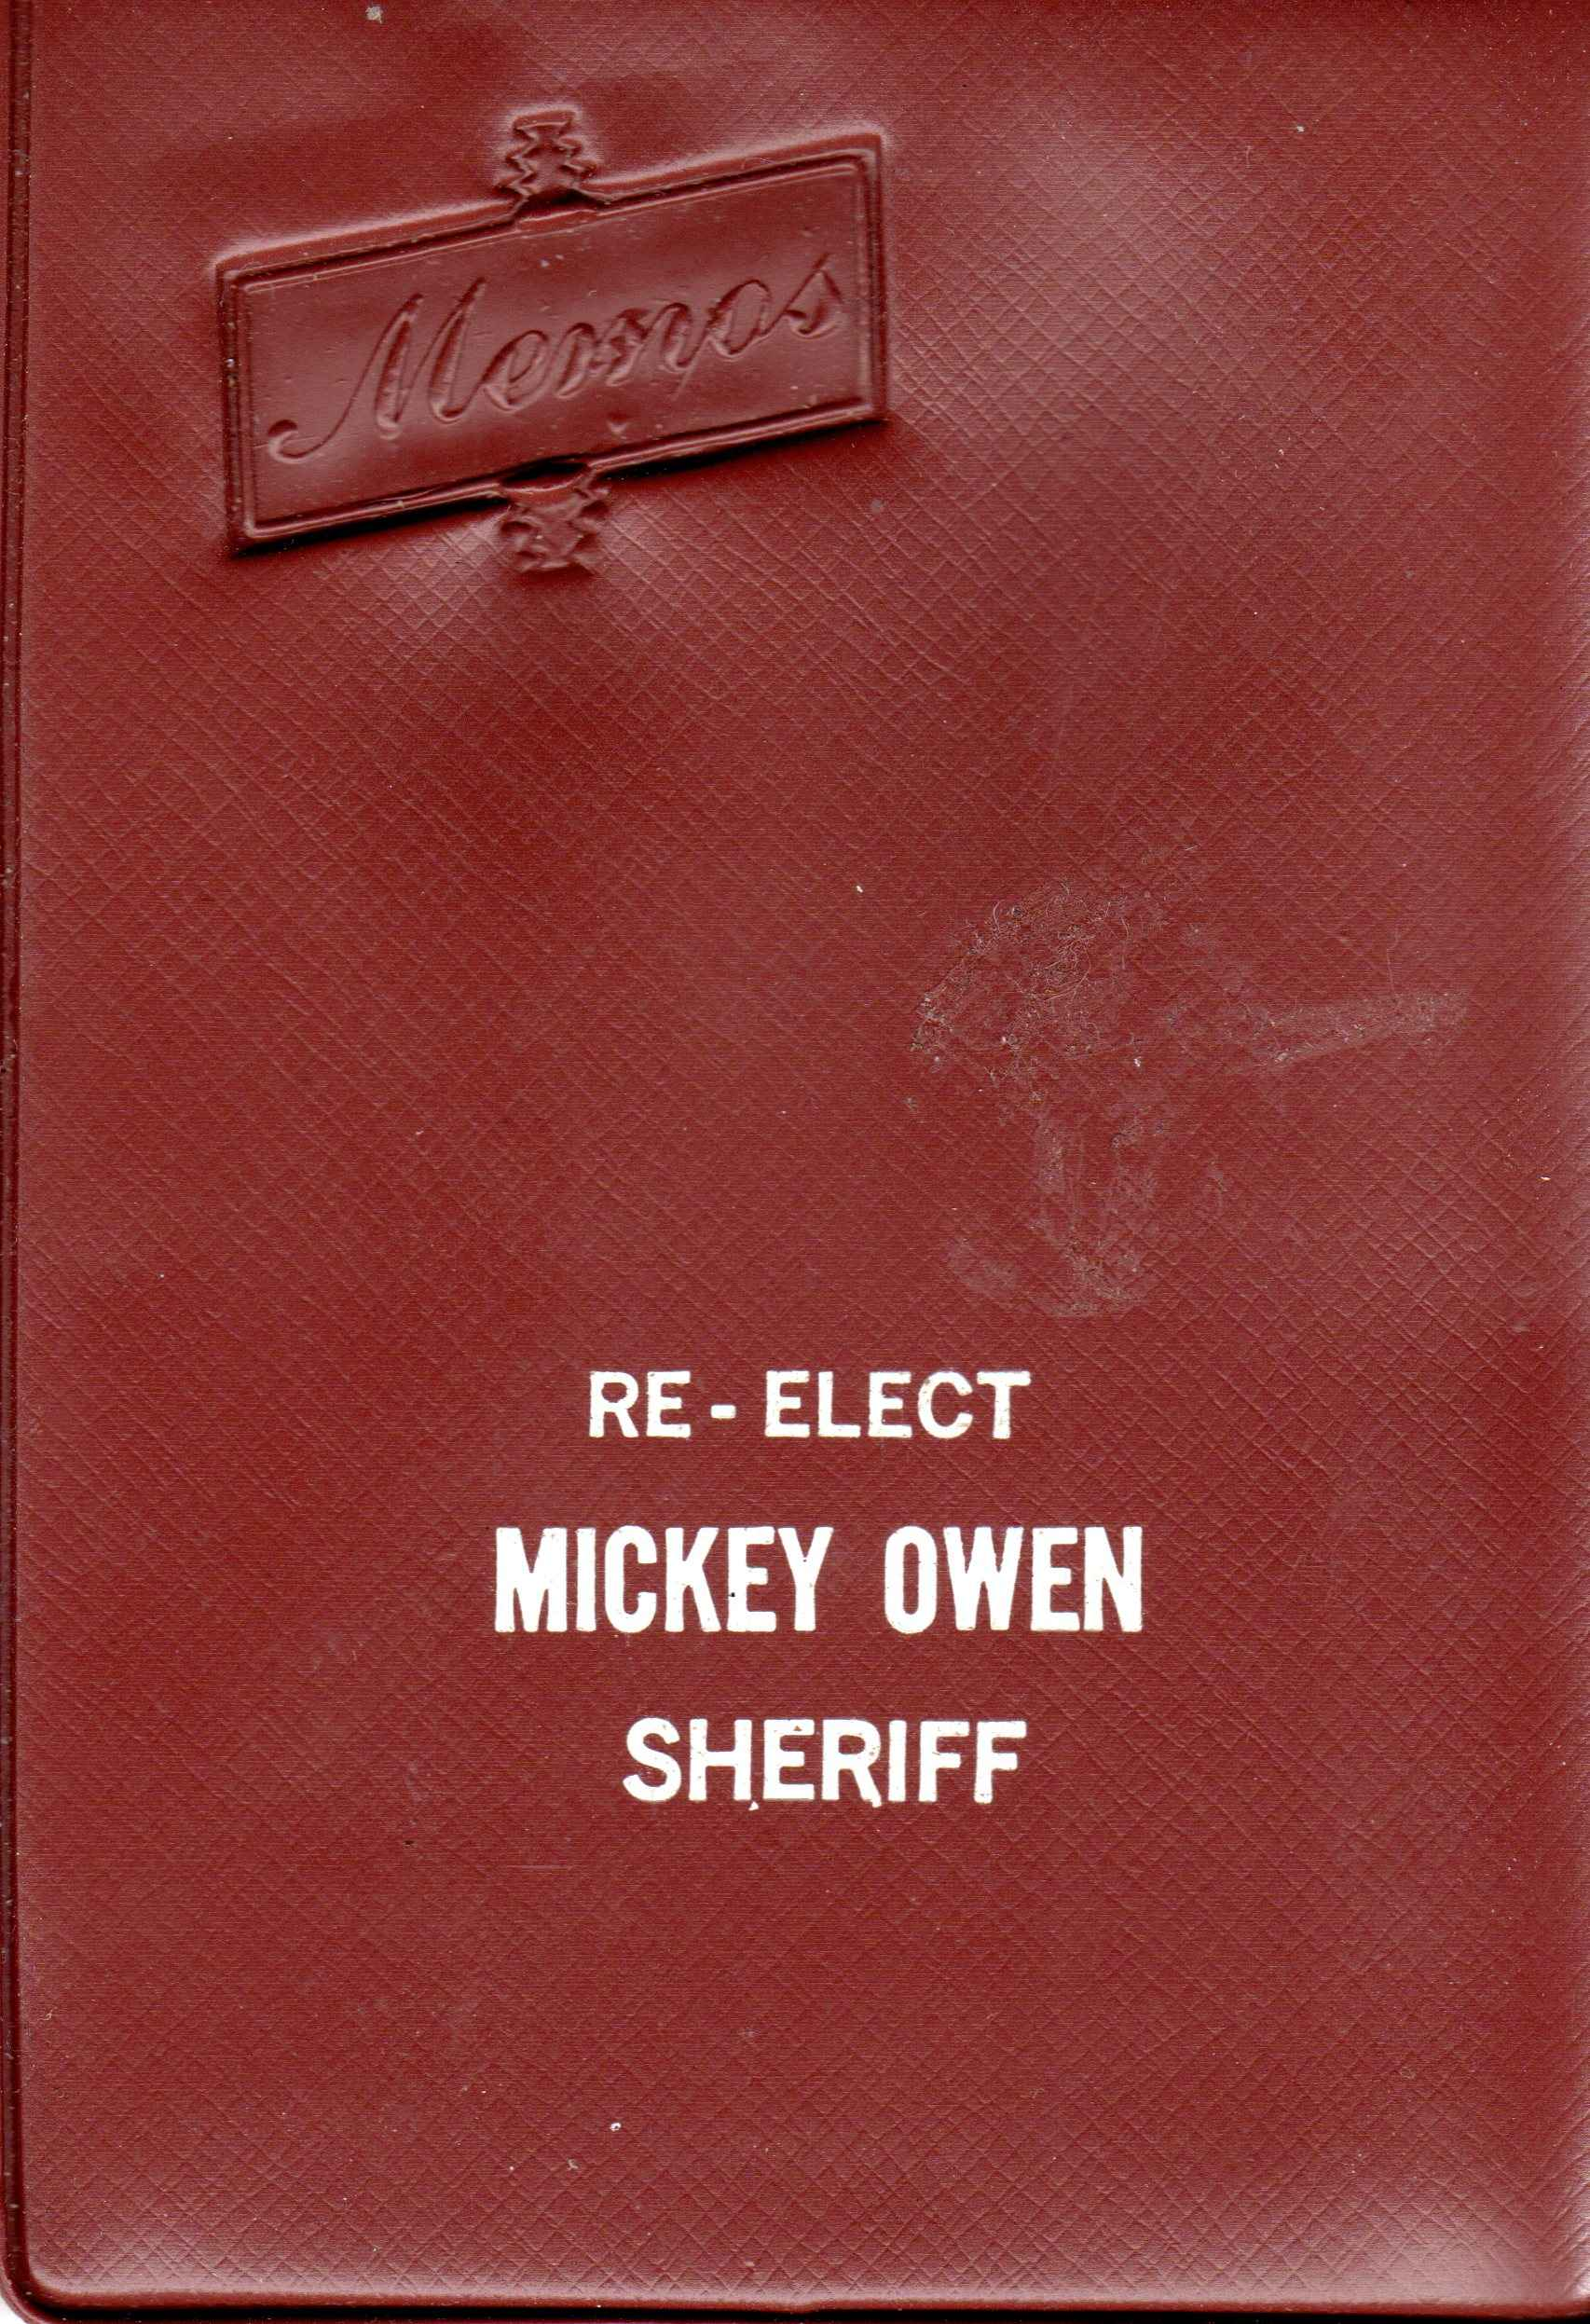 Re-elect Mickey Owen Sheriff memo pad